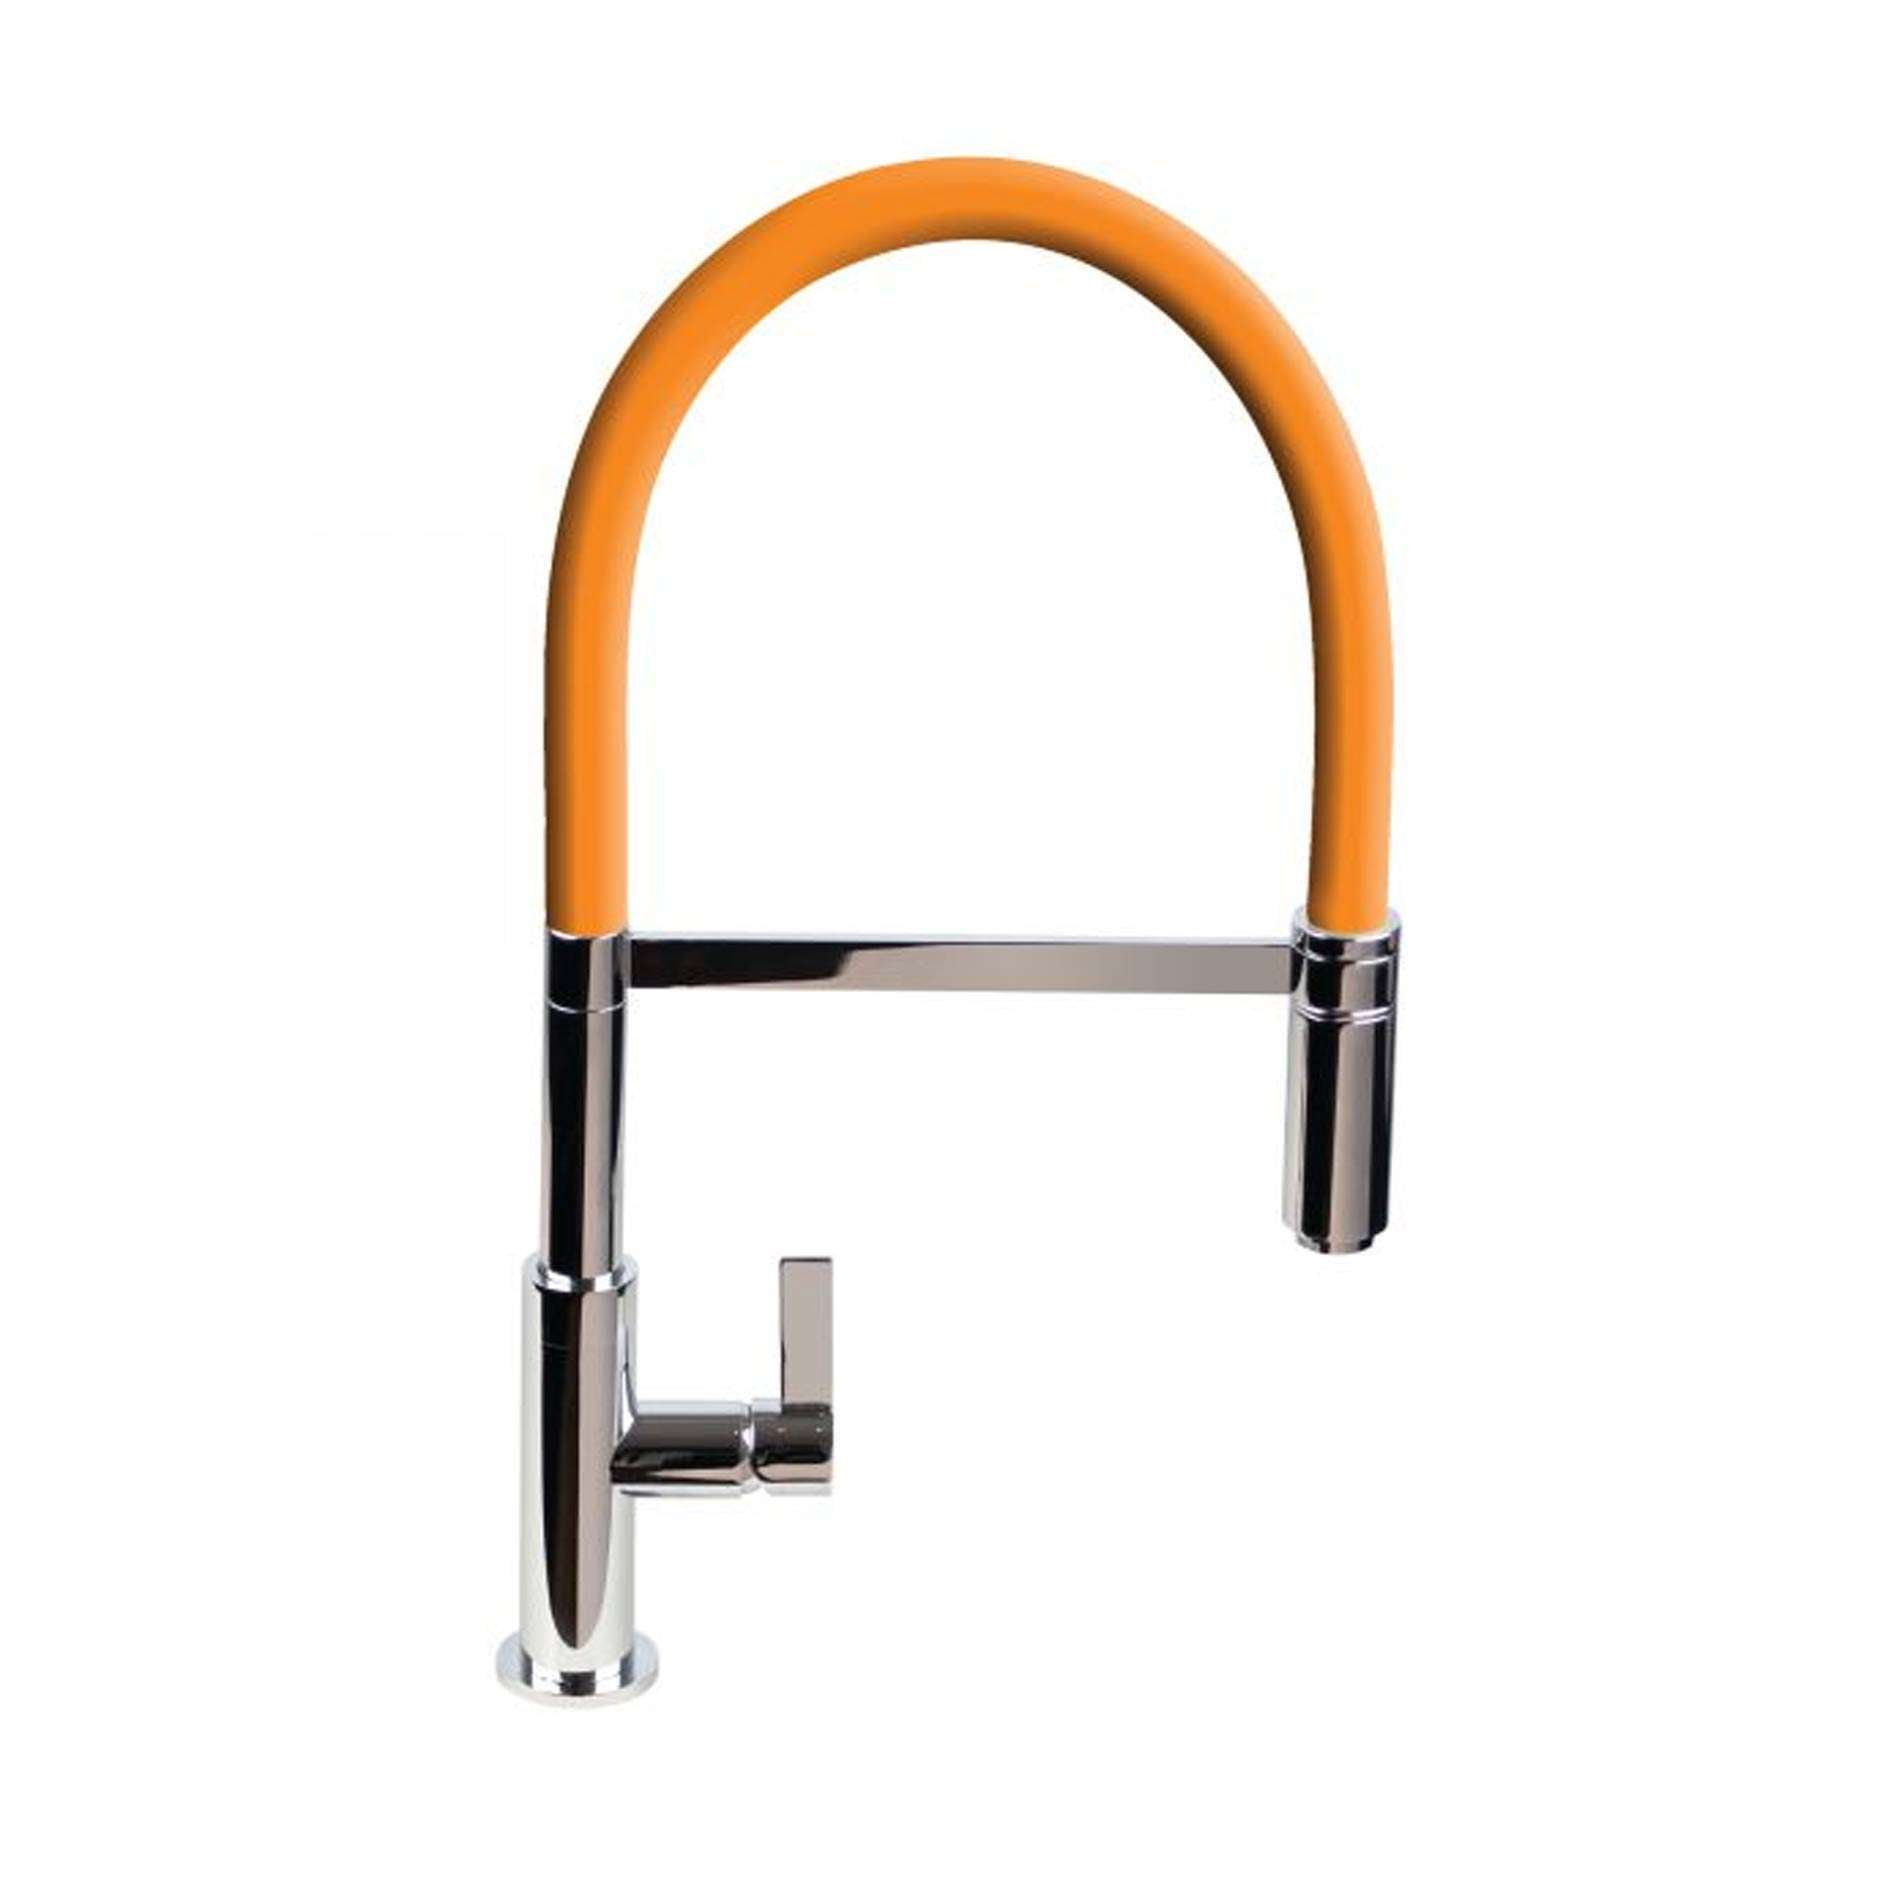 Picture of Spirale Chrome And Orange Flexible Spout Tap